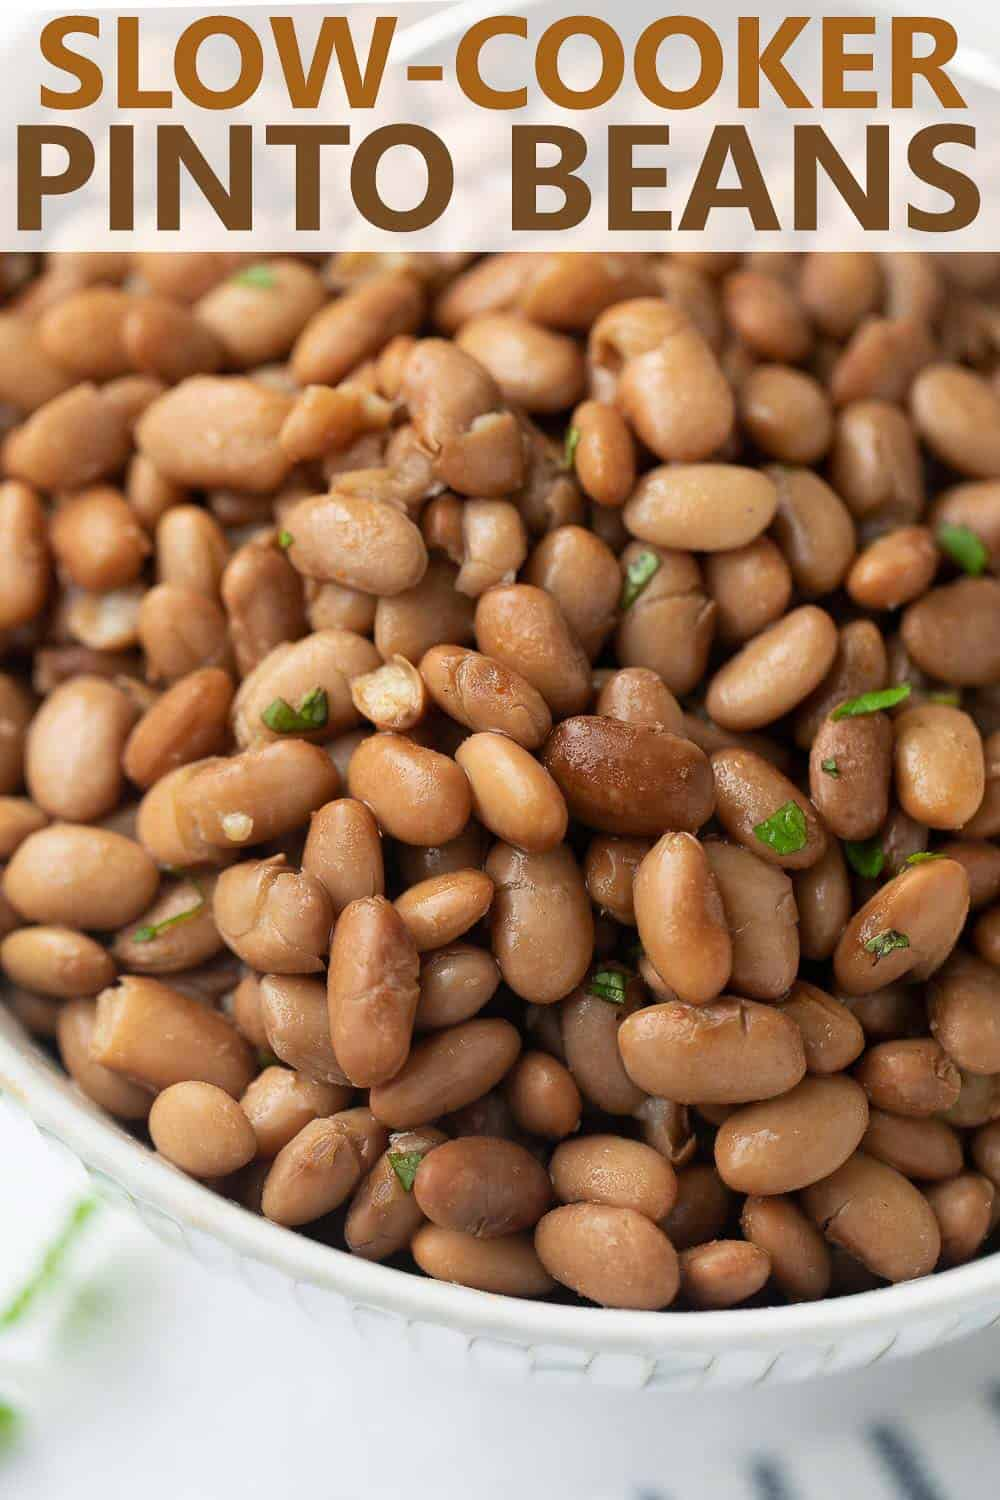 close up shot of cooked pinto beans in white bowl